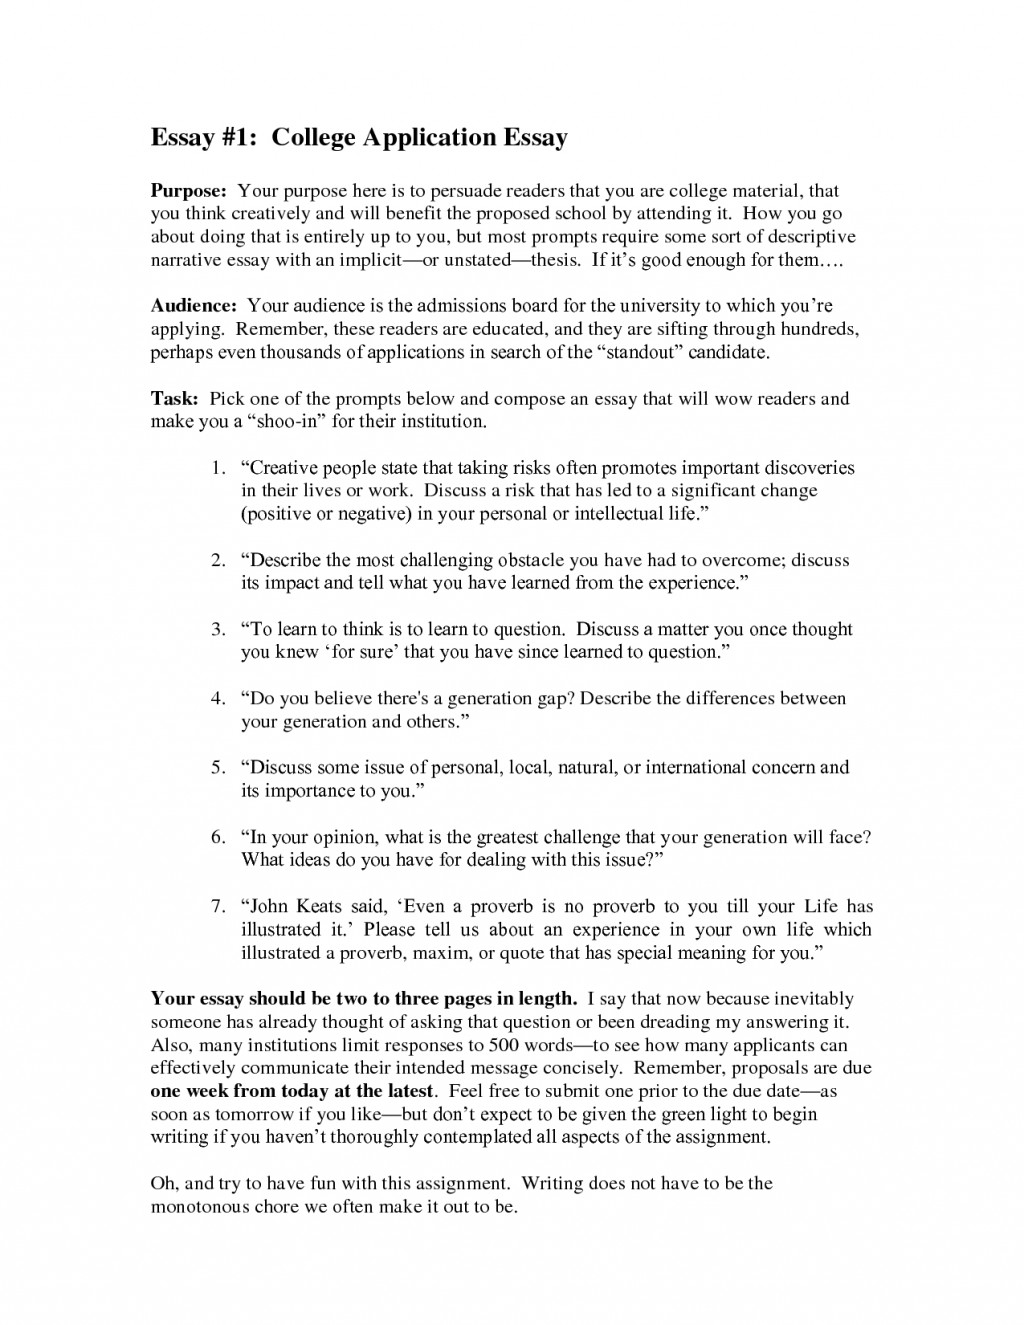 002 Essay Example Collegepplication How To Format Awesome A College Application Scholarship Your Large